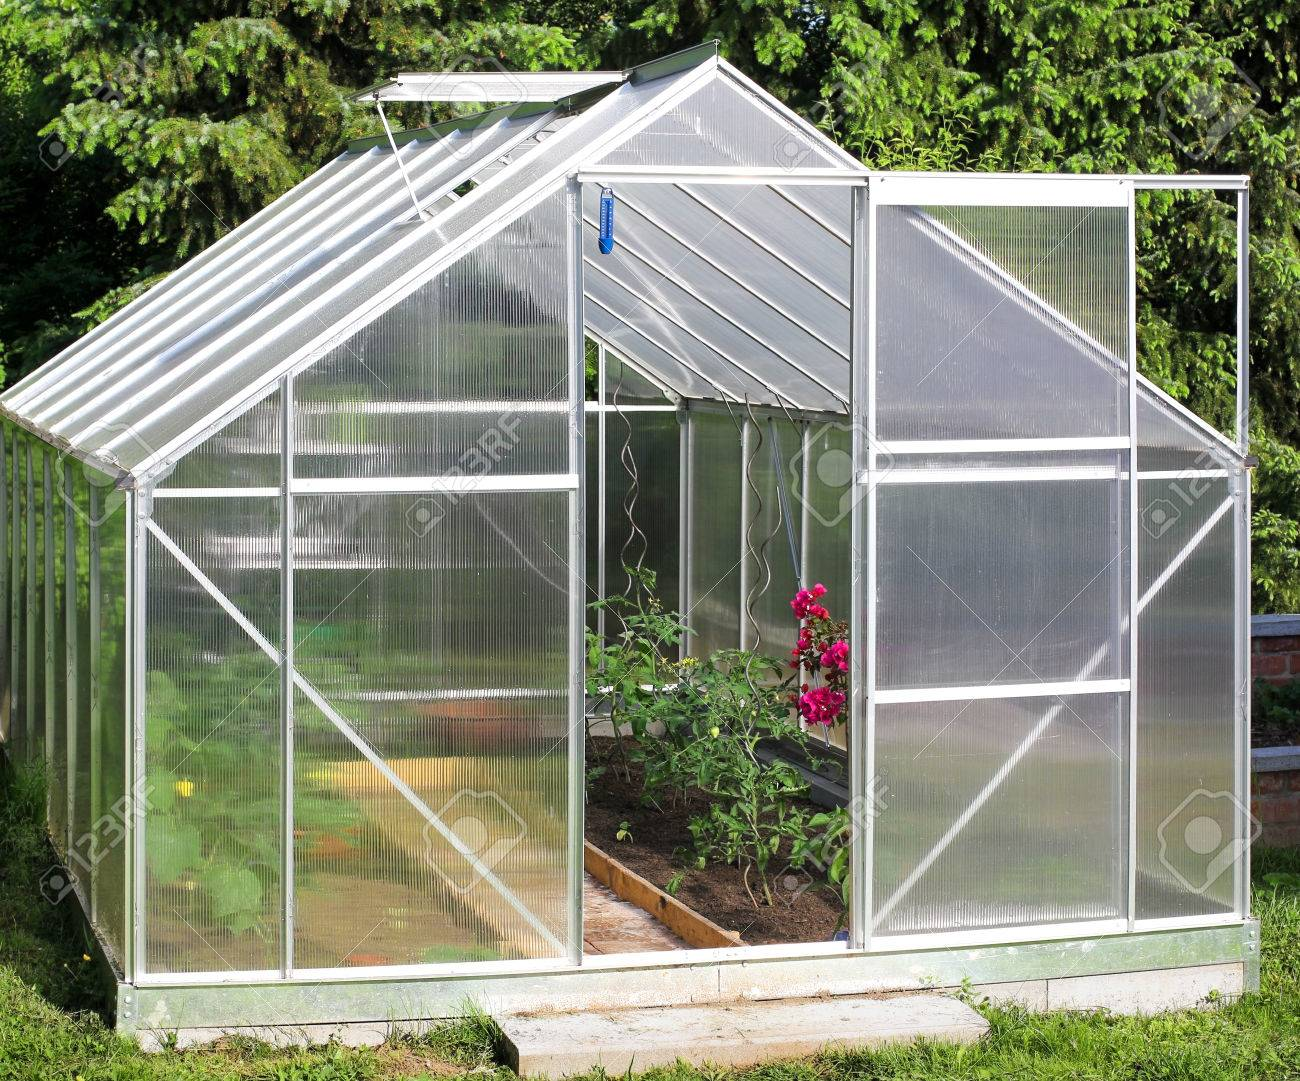 Greenhouse with tomato plants - 40193036